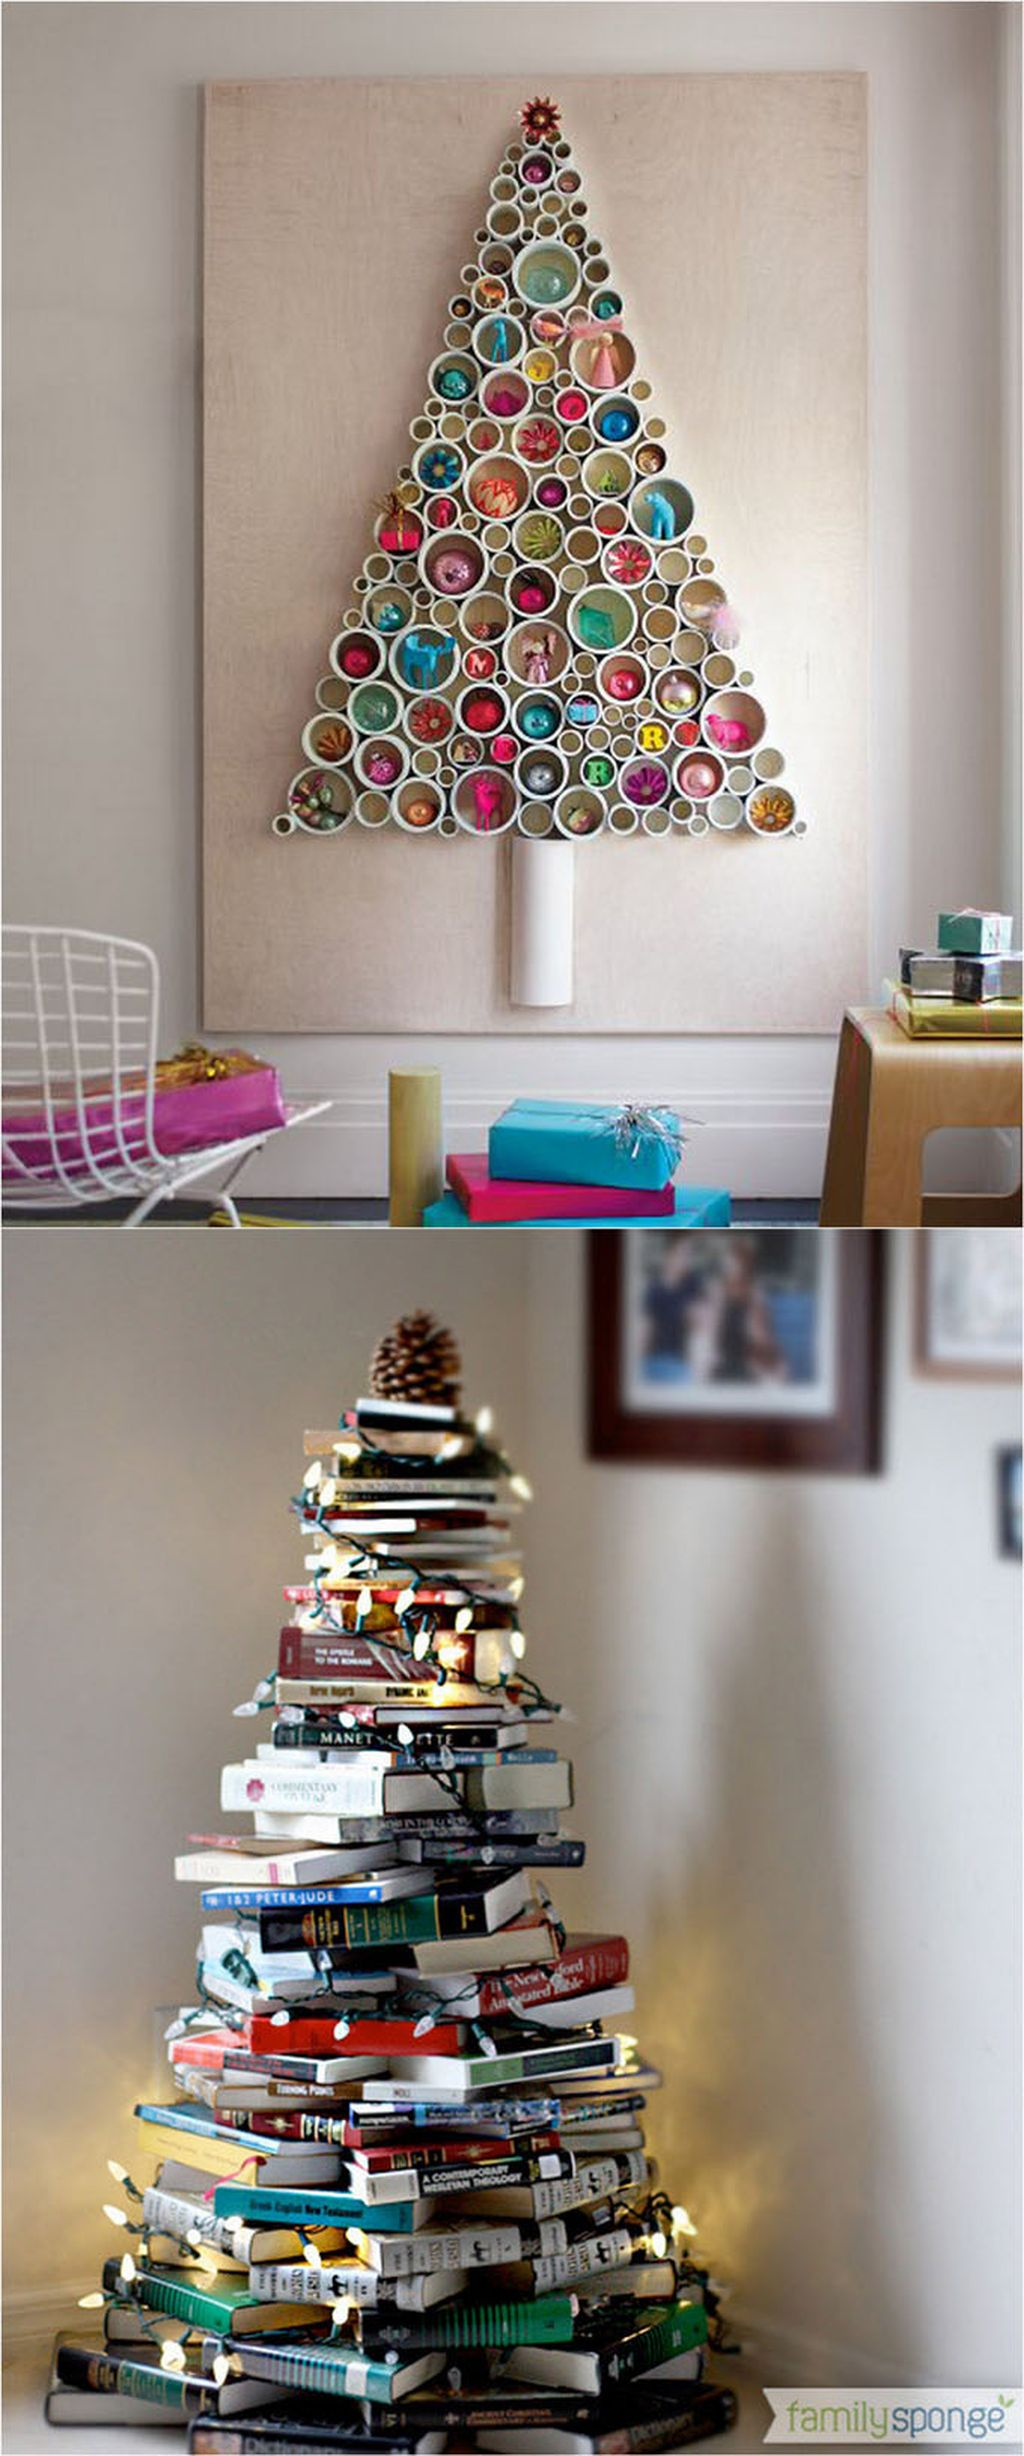 Easy And Creative DIY Christmas Tree Design Ideas You Can Try As Alternatives 38